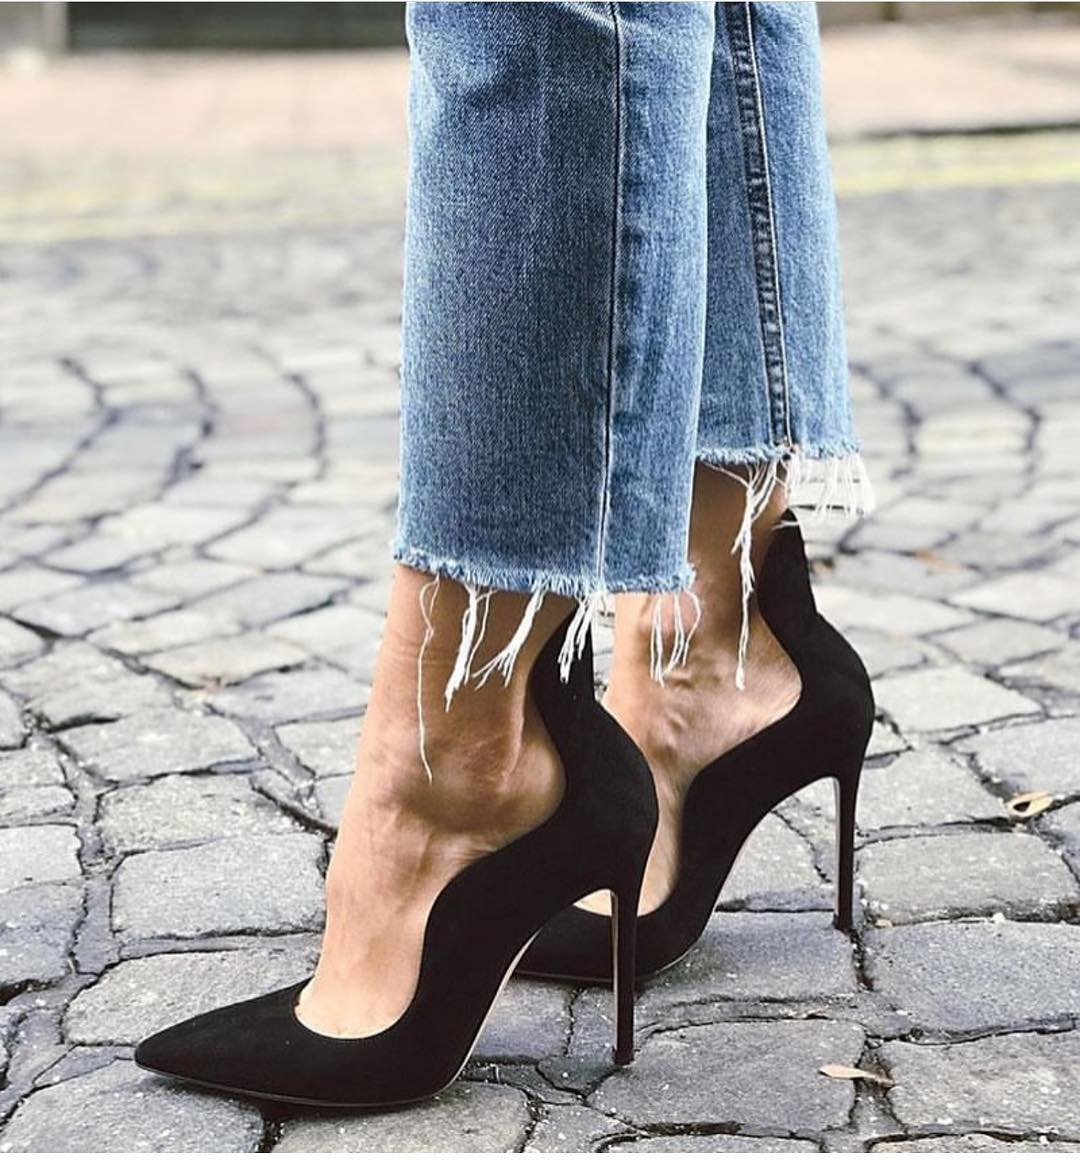 Classic Heeled Black Pumps With Frayed Blue Jeans For Spring 2019